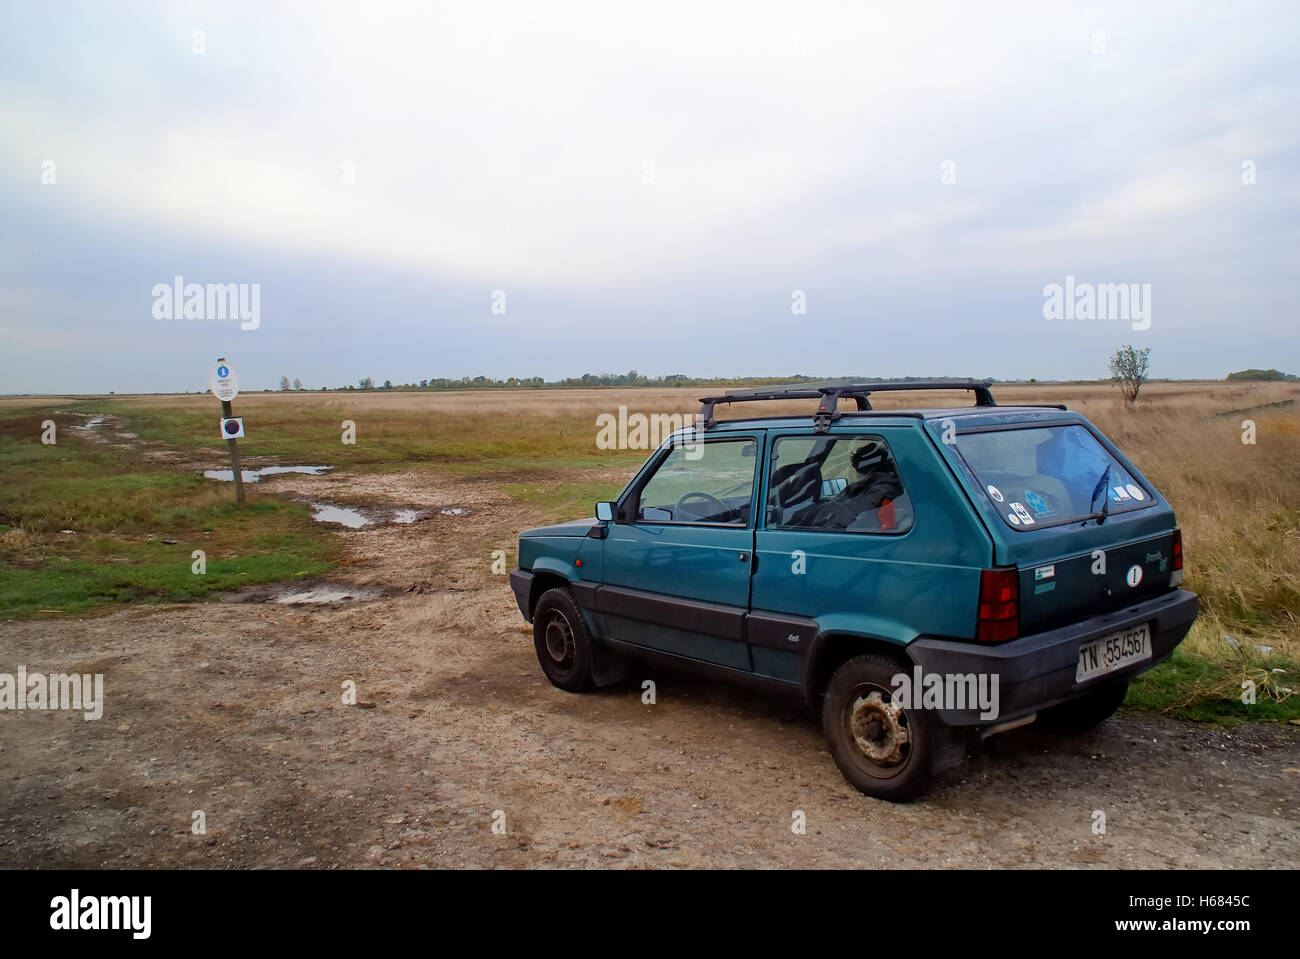 Hortobagy, Hungary. A Fiat Panda 4X4 in the Hungarian Puszta. The car have an Italian number-plate. - Stock Image